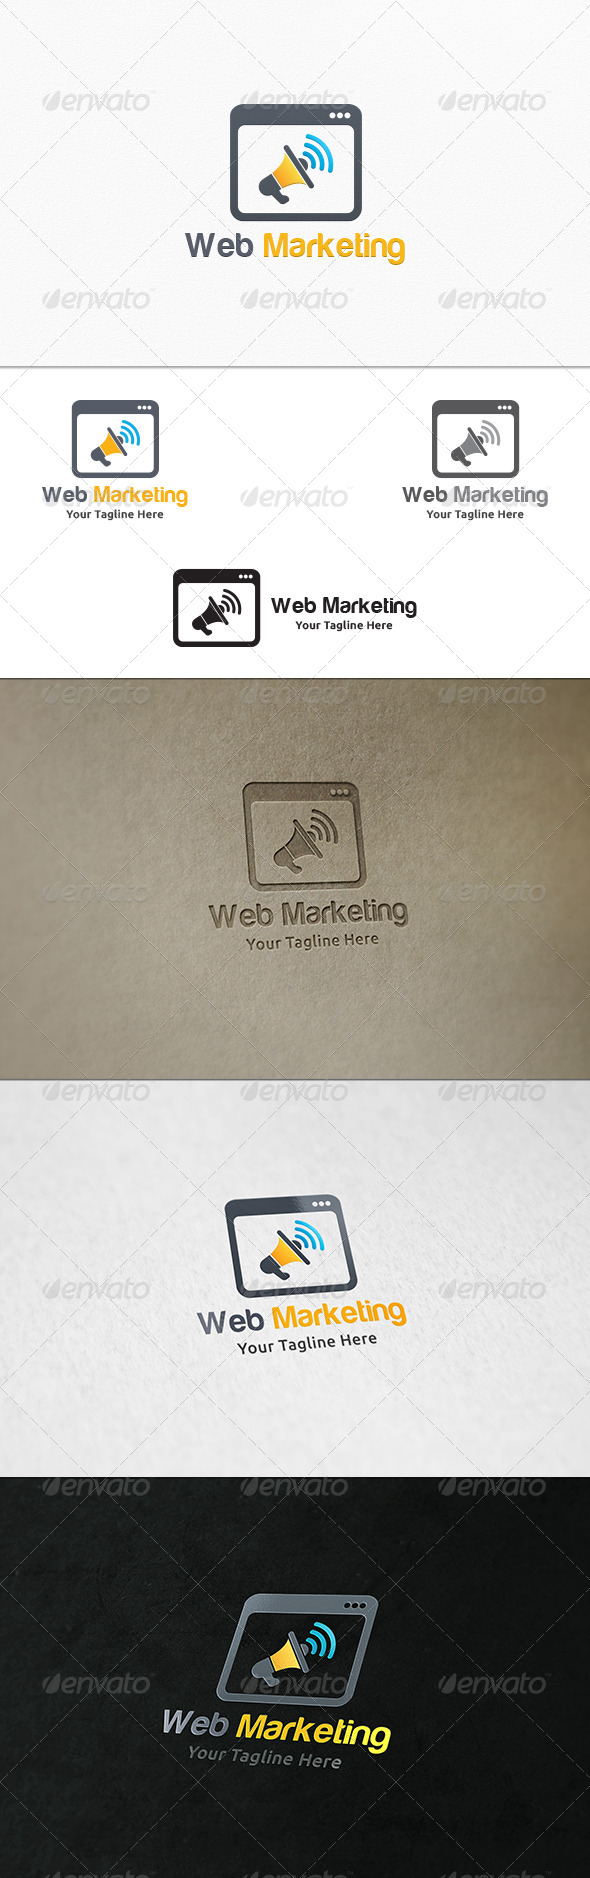 Web Marketing Logo Template